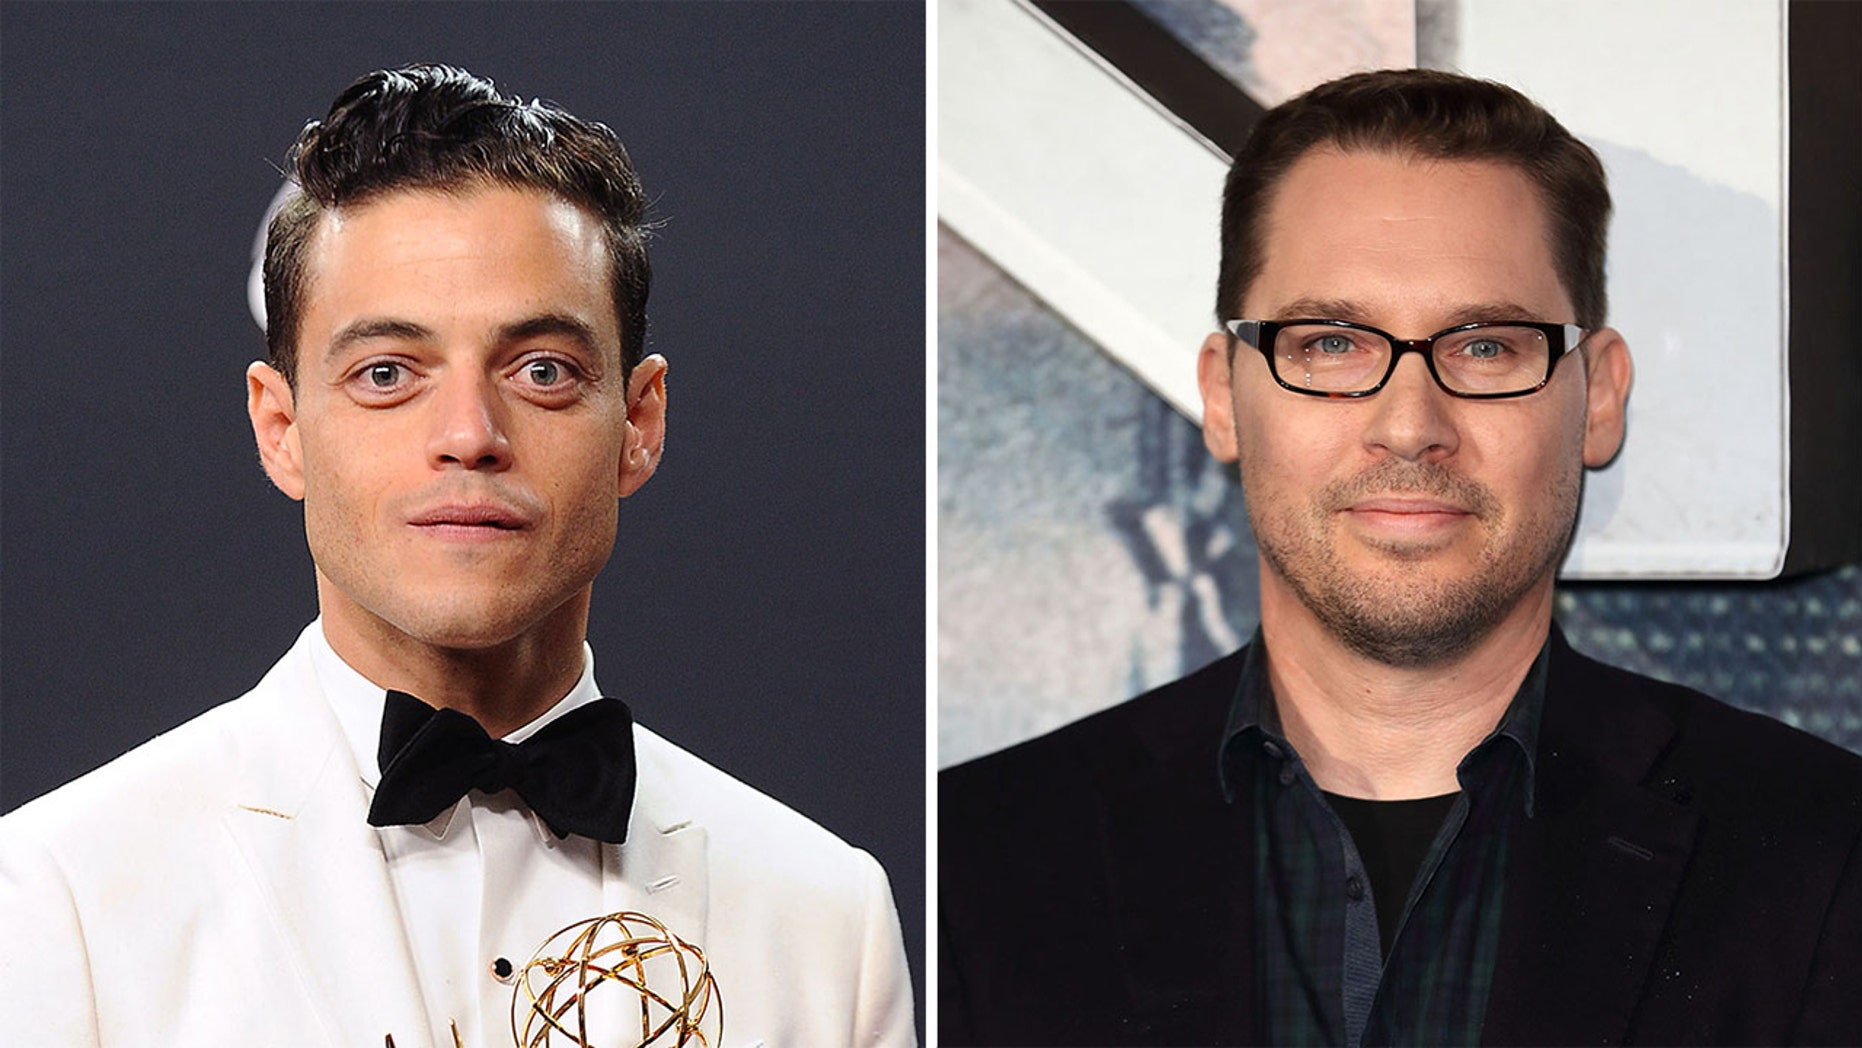 """Rami Malek has spoken out about the continued allegations of sexual abuse against Bryan Singer, who directed Malek's recent film """"Bohemian Rhapsody"""""""